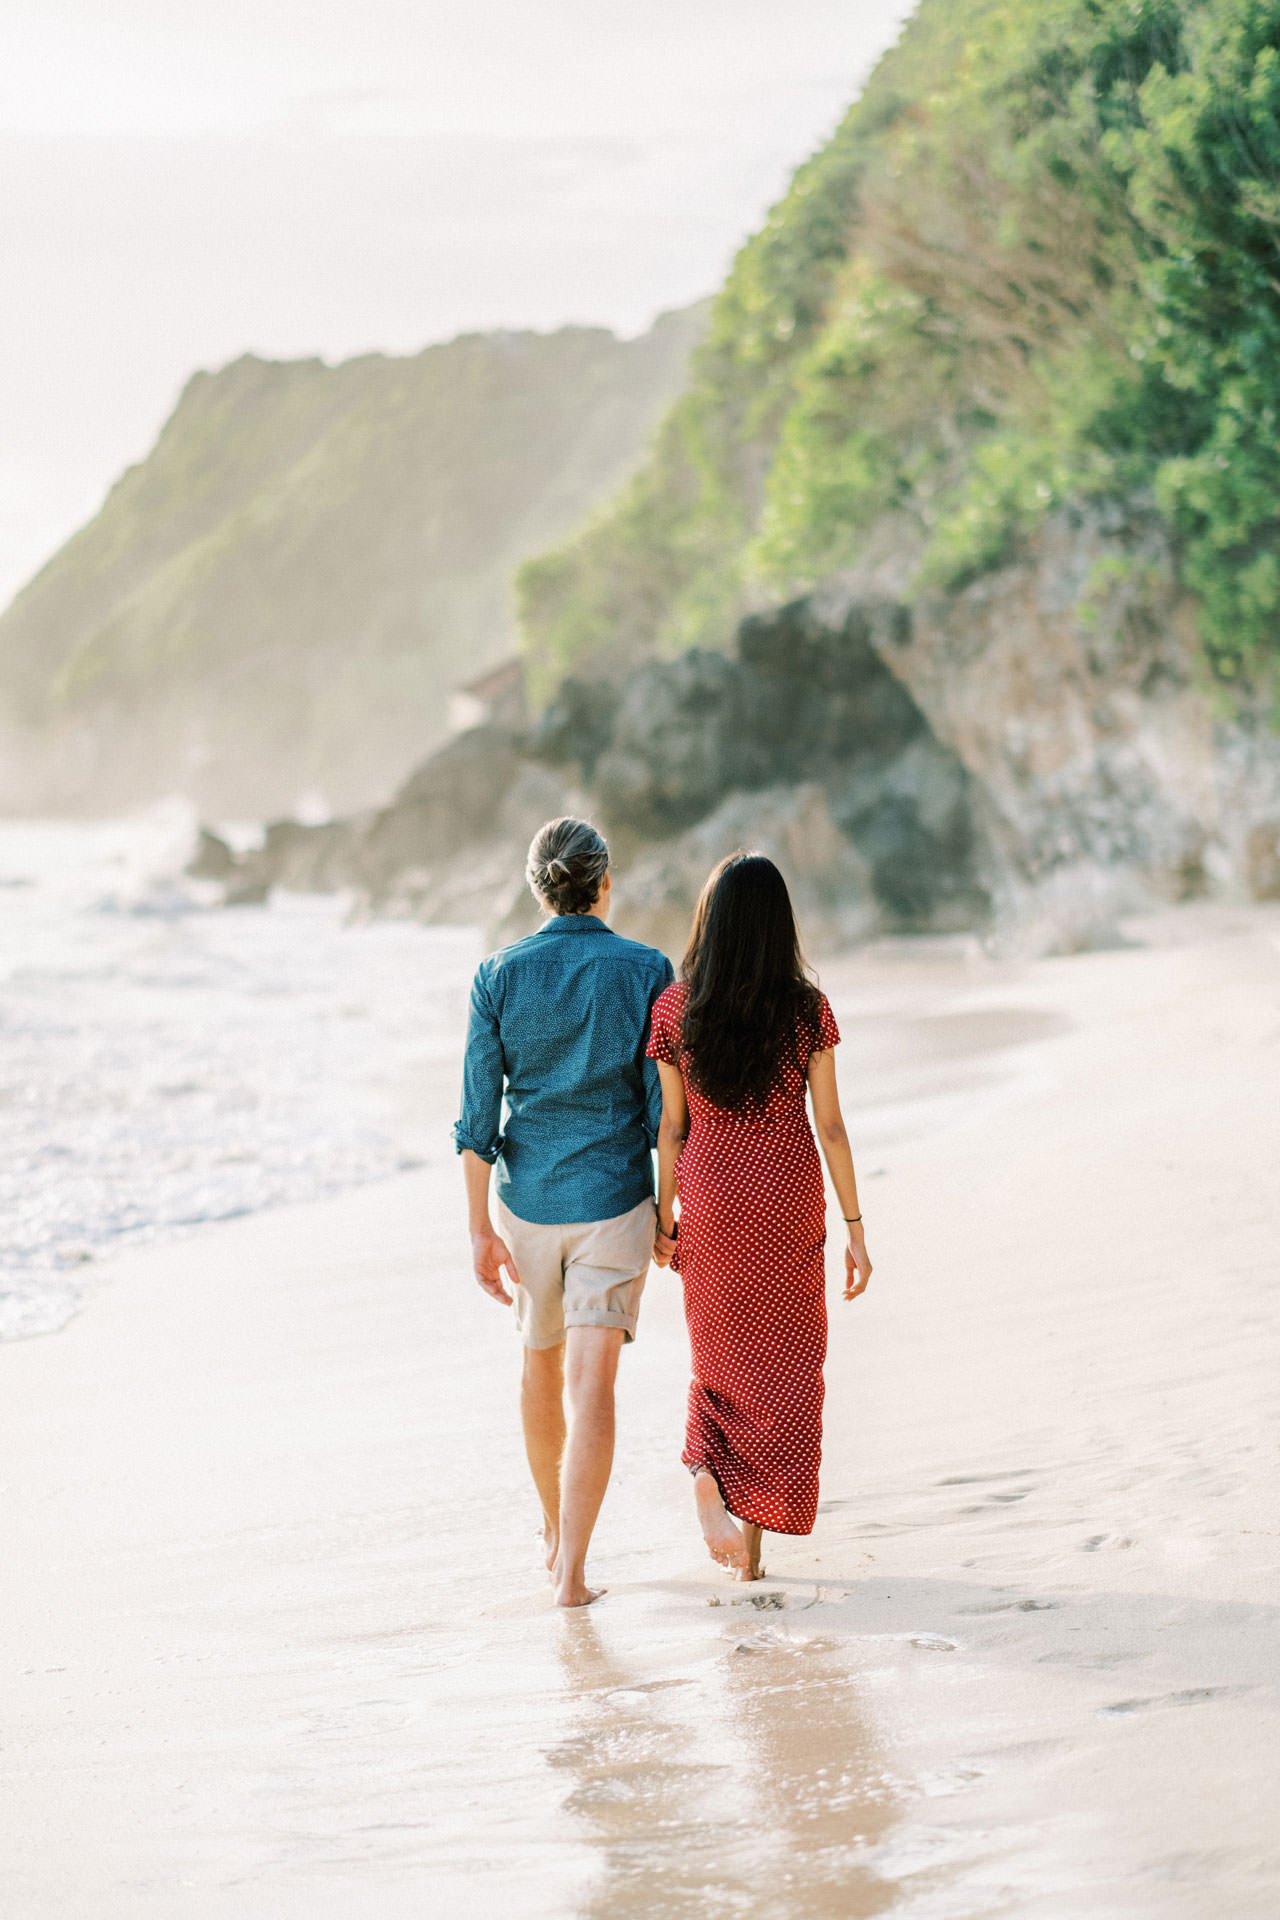 Bali's Beach Marriage Proposal with a Proposal Video! 22